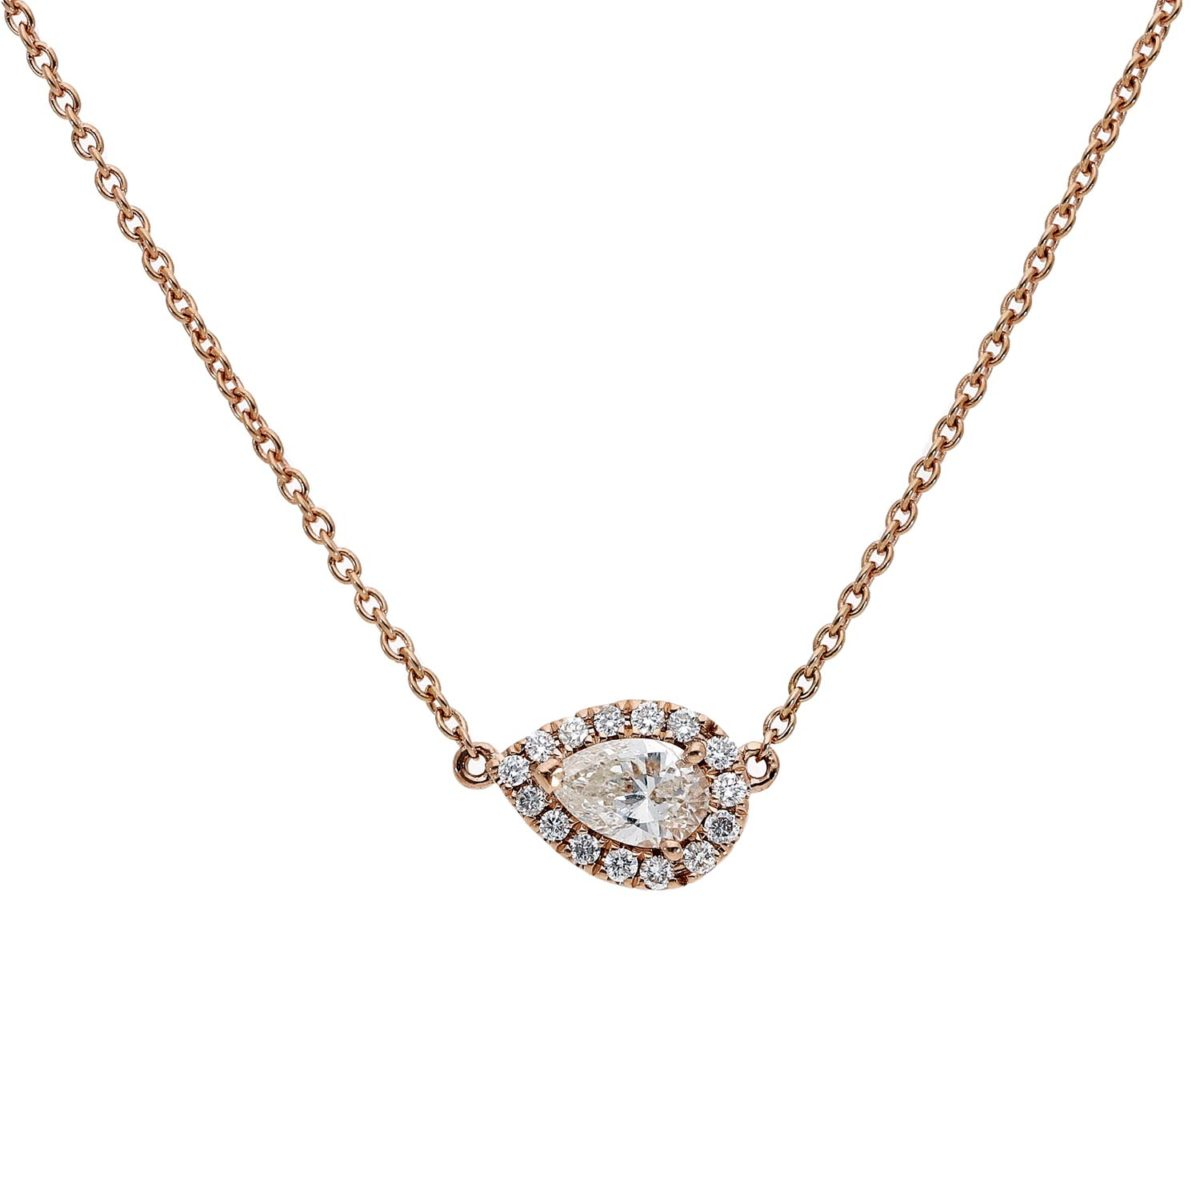 Diamond NecklaceStyle #: MK-847008